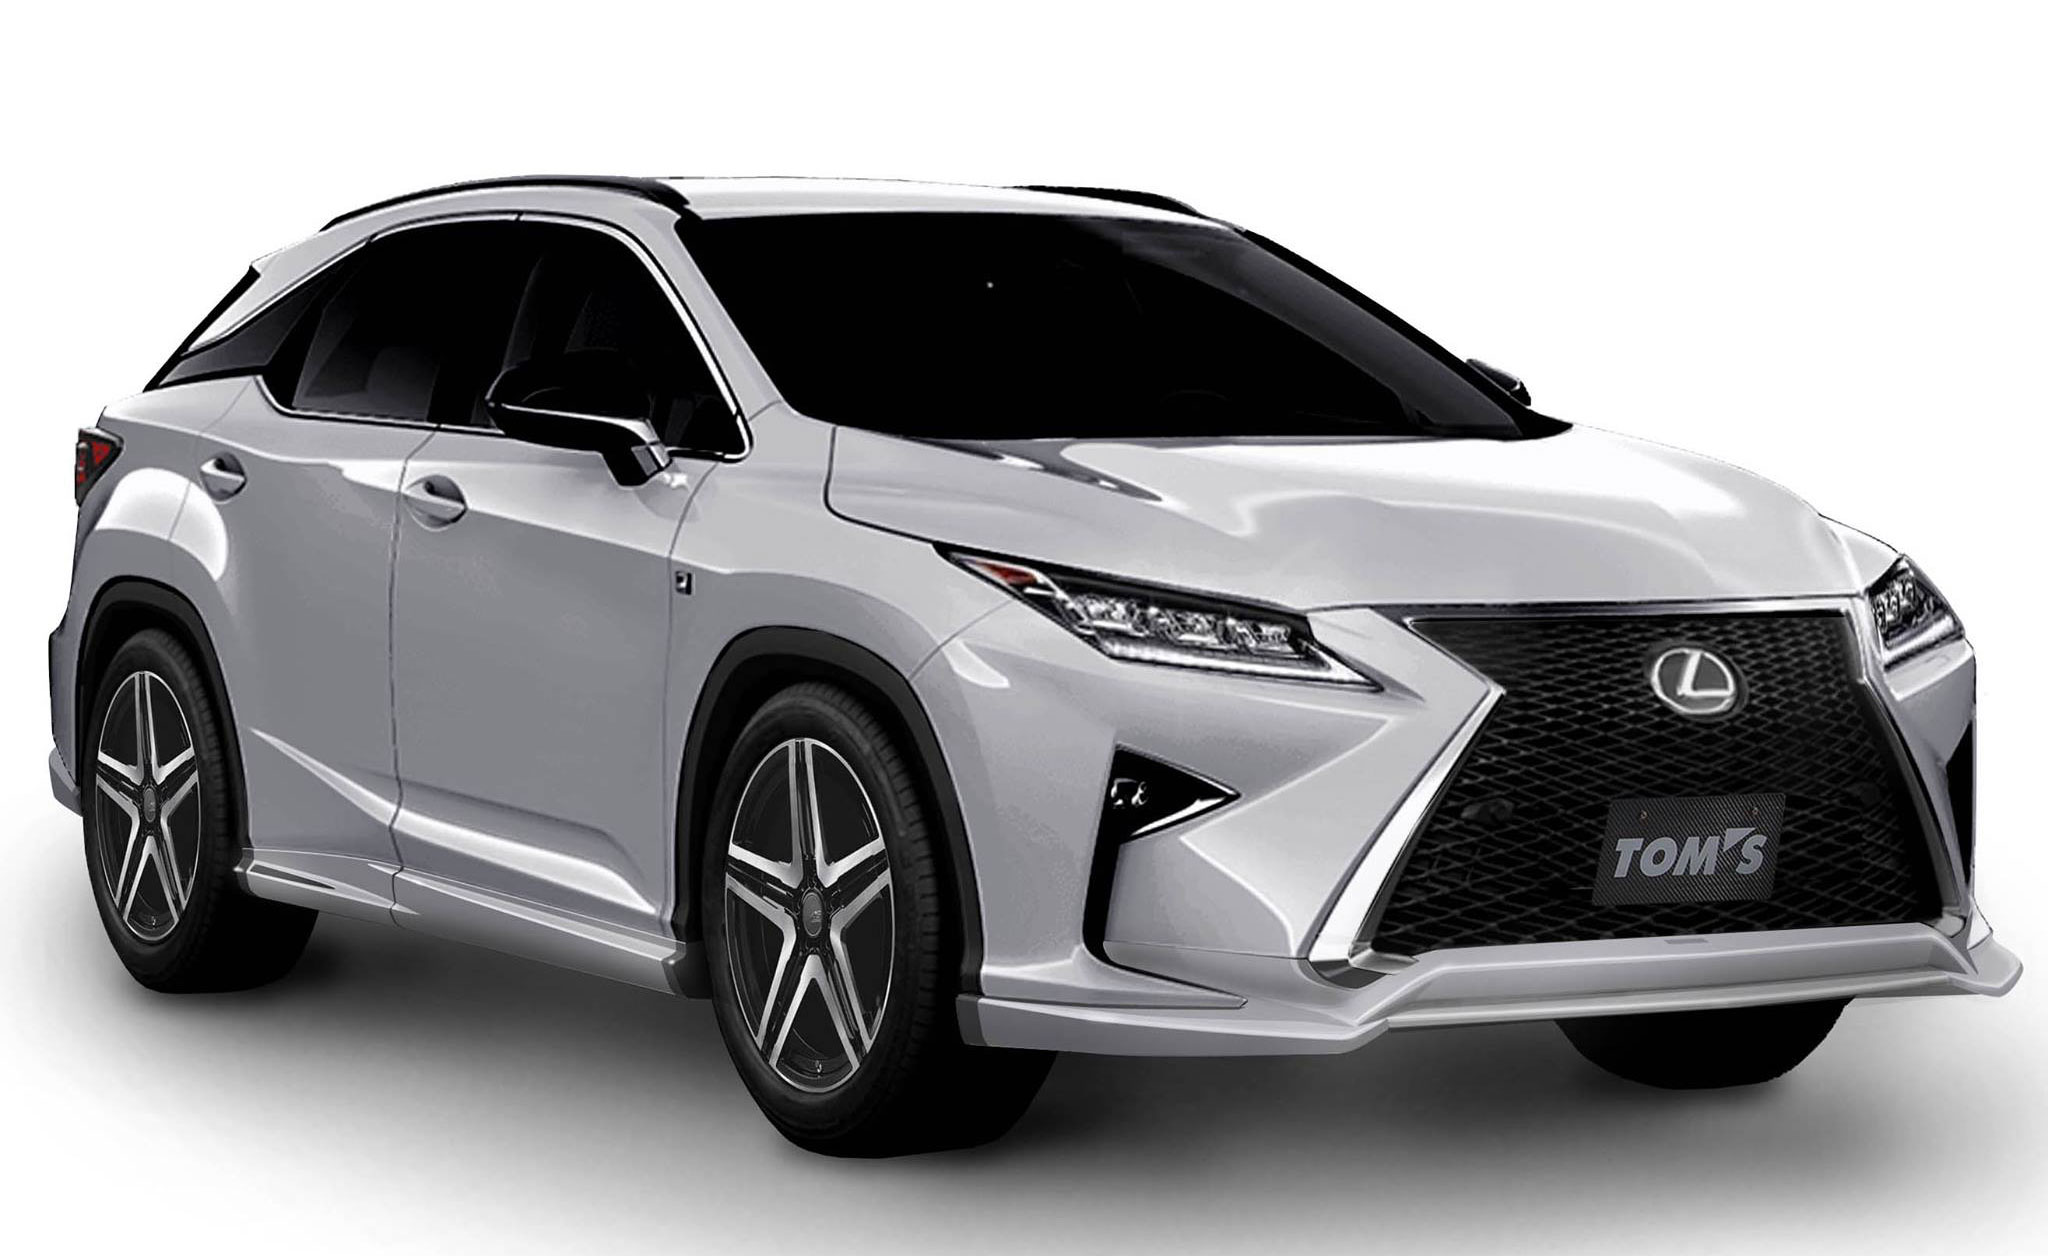 Lexus Tuner TOM S Japan Working on New RX Body Kit